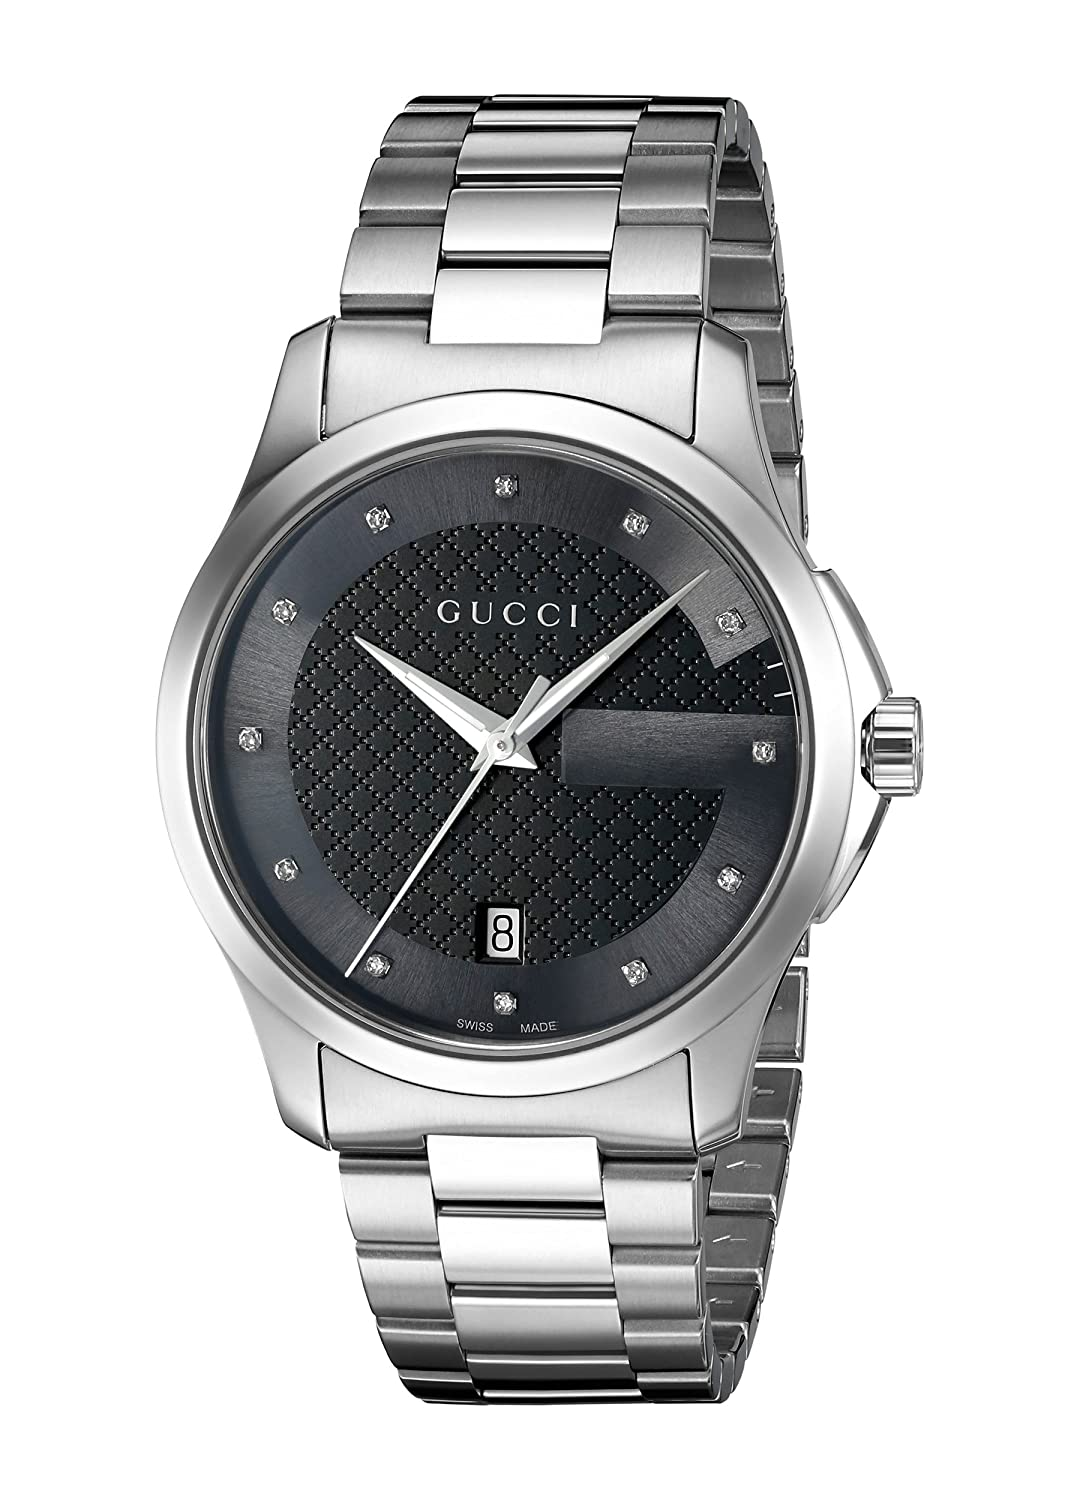 Gucci G-Timelss Quartz Stainless Steel Silver-Toned Watch Model YA126456